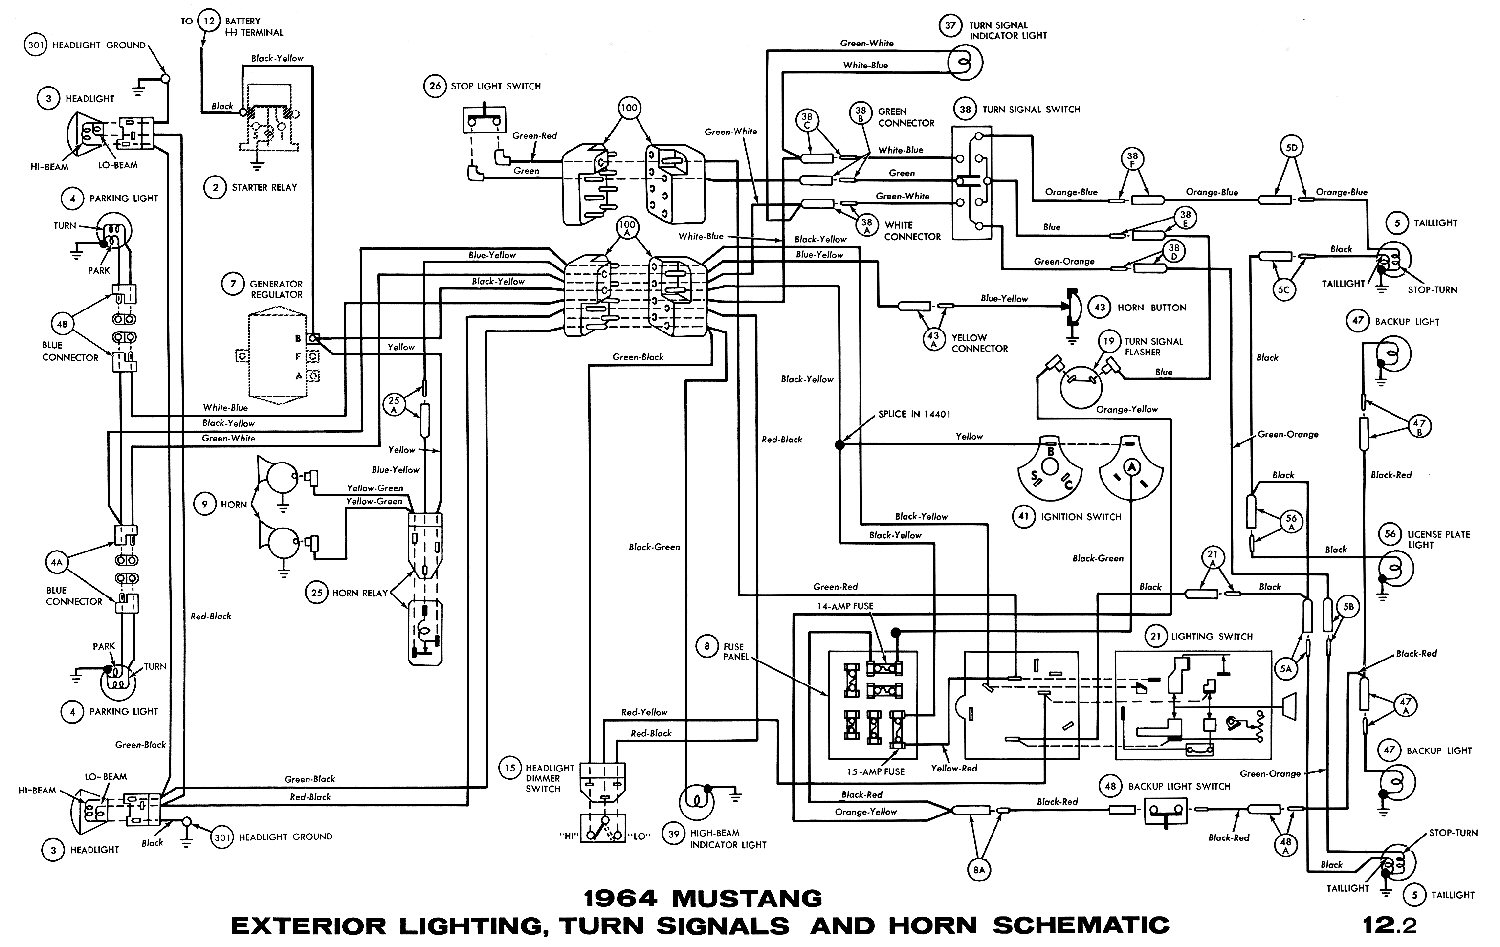 1964 Mustang Wiring Diagrams on 70 thunderbird ignition diagram